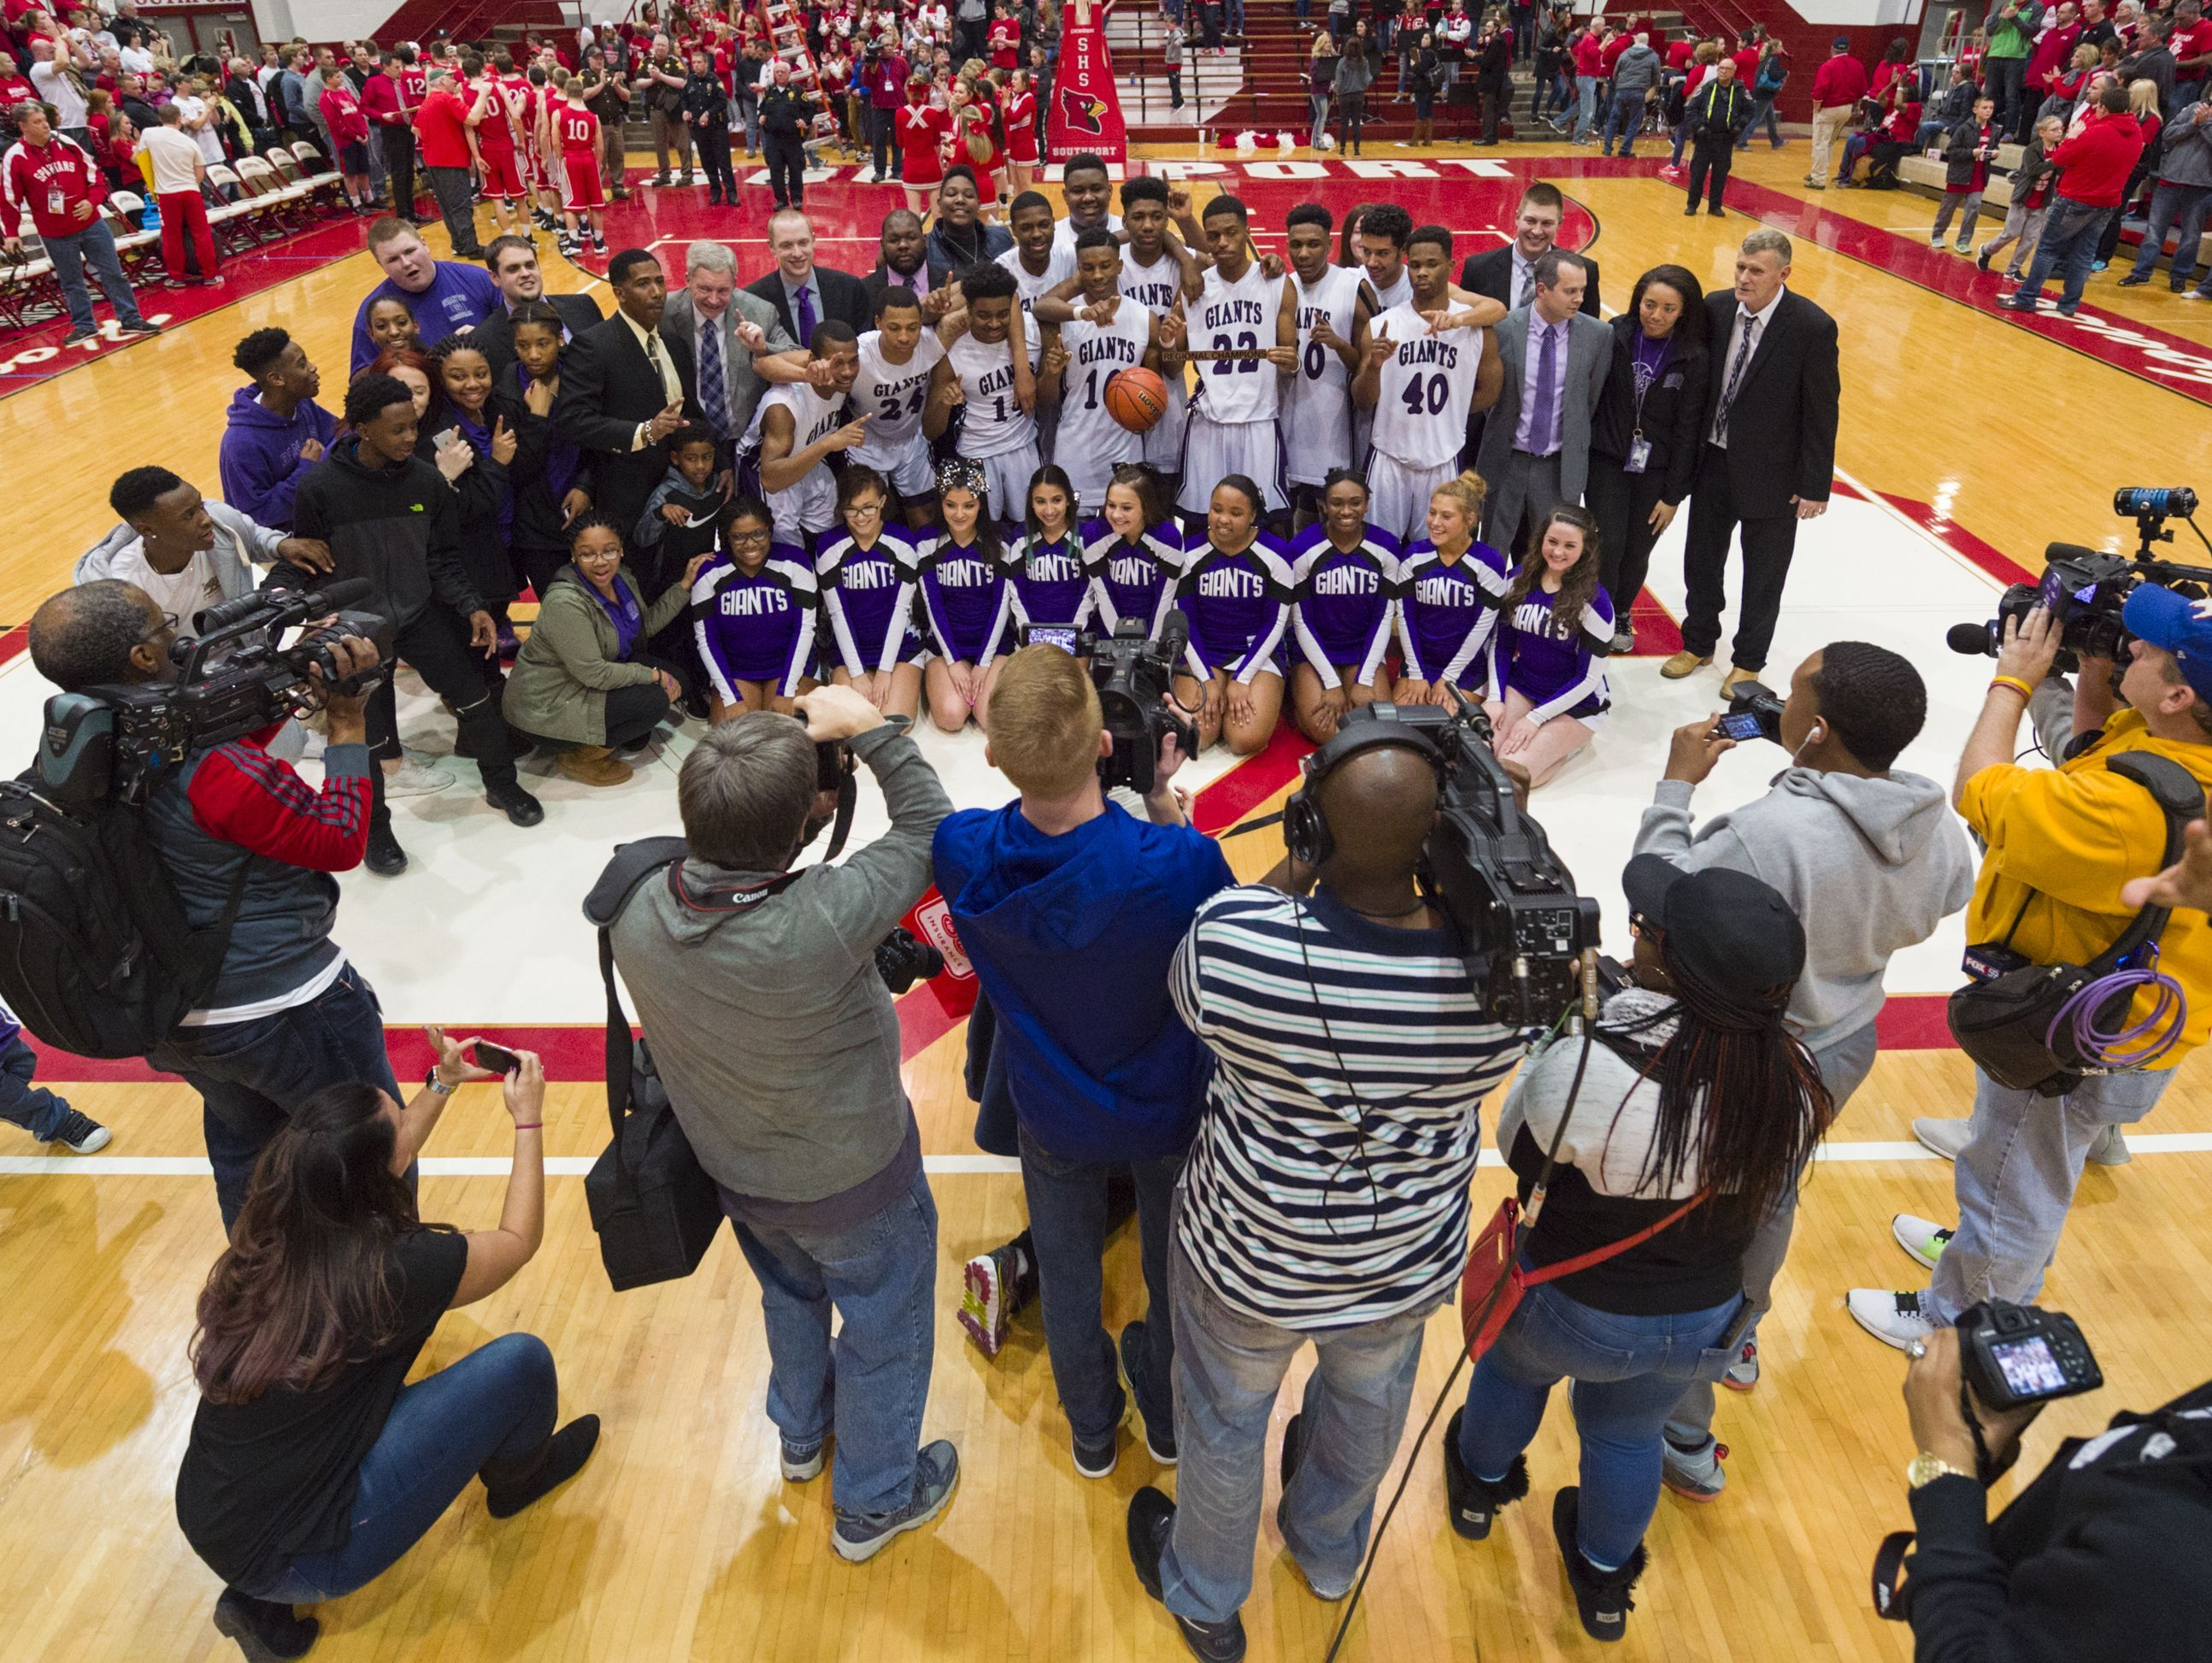 Ben Davis players and staff pose for photographers after winning an IHSAA Boys Basketball Regional championship game, Saturday at Southport High School.